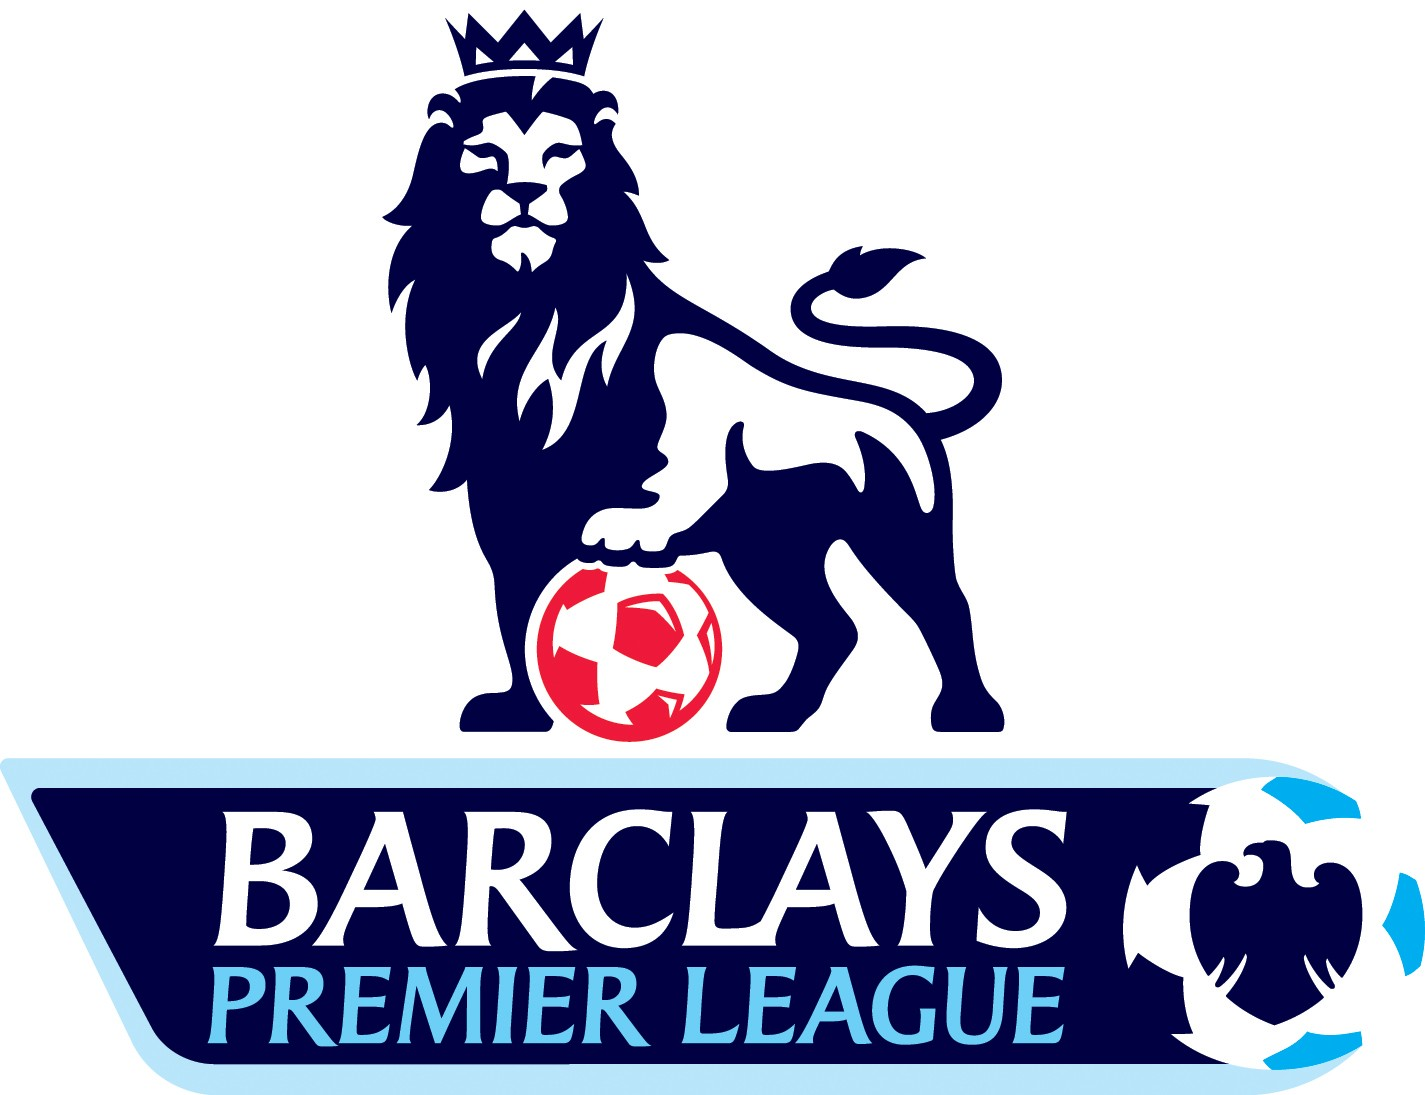 Barclays+Premier+League